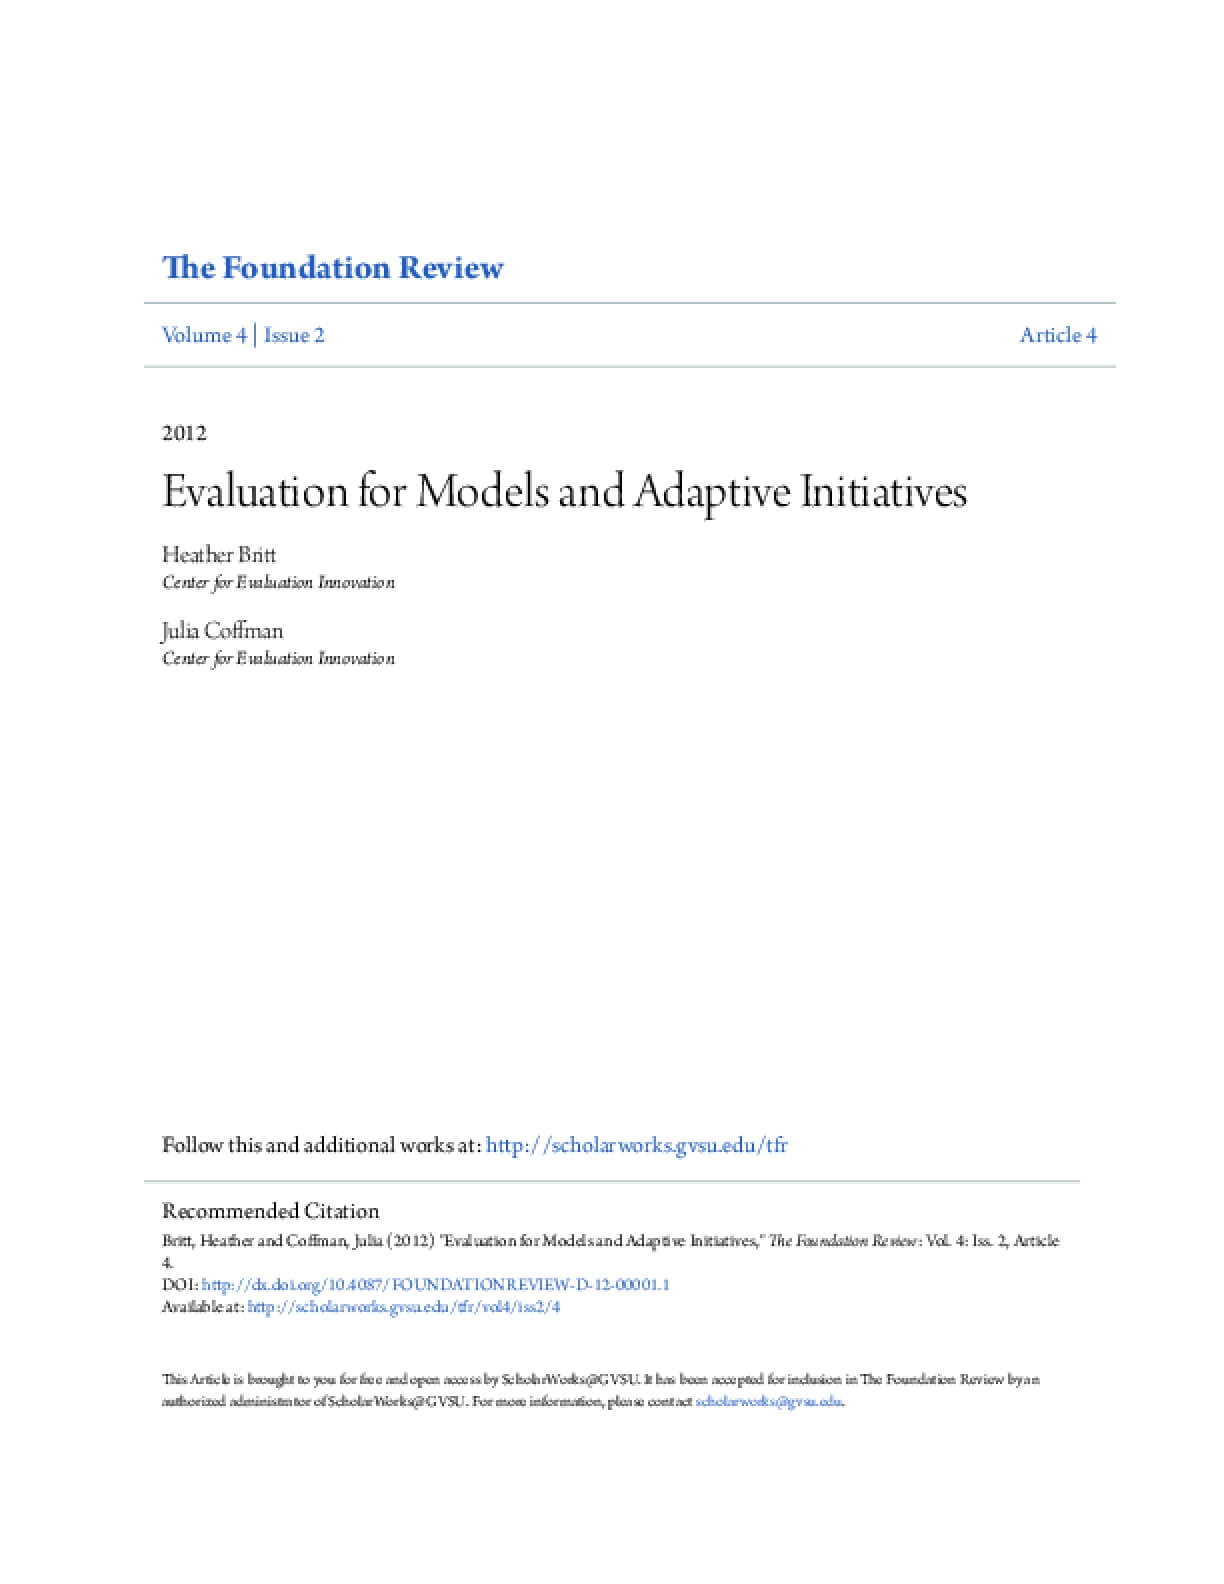 Evaluation for Models and Adaptive Initiatives